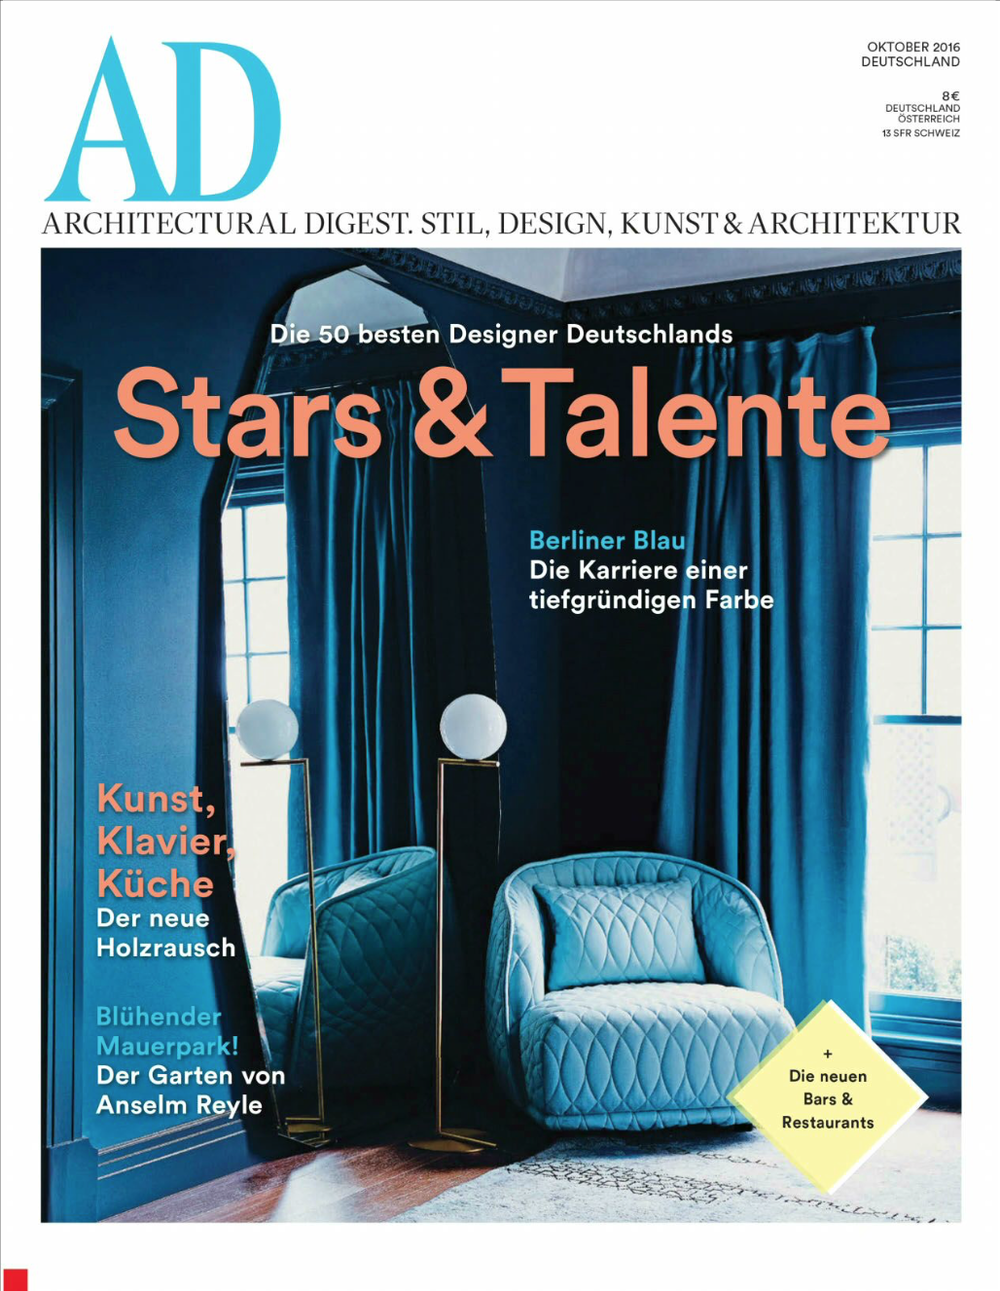 AD OCTOBER ISSUE 2016